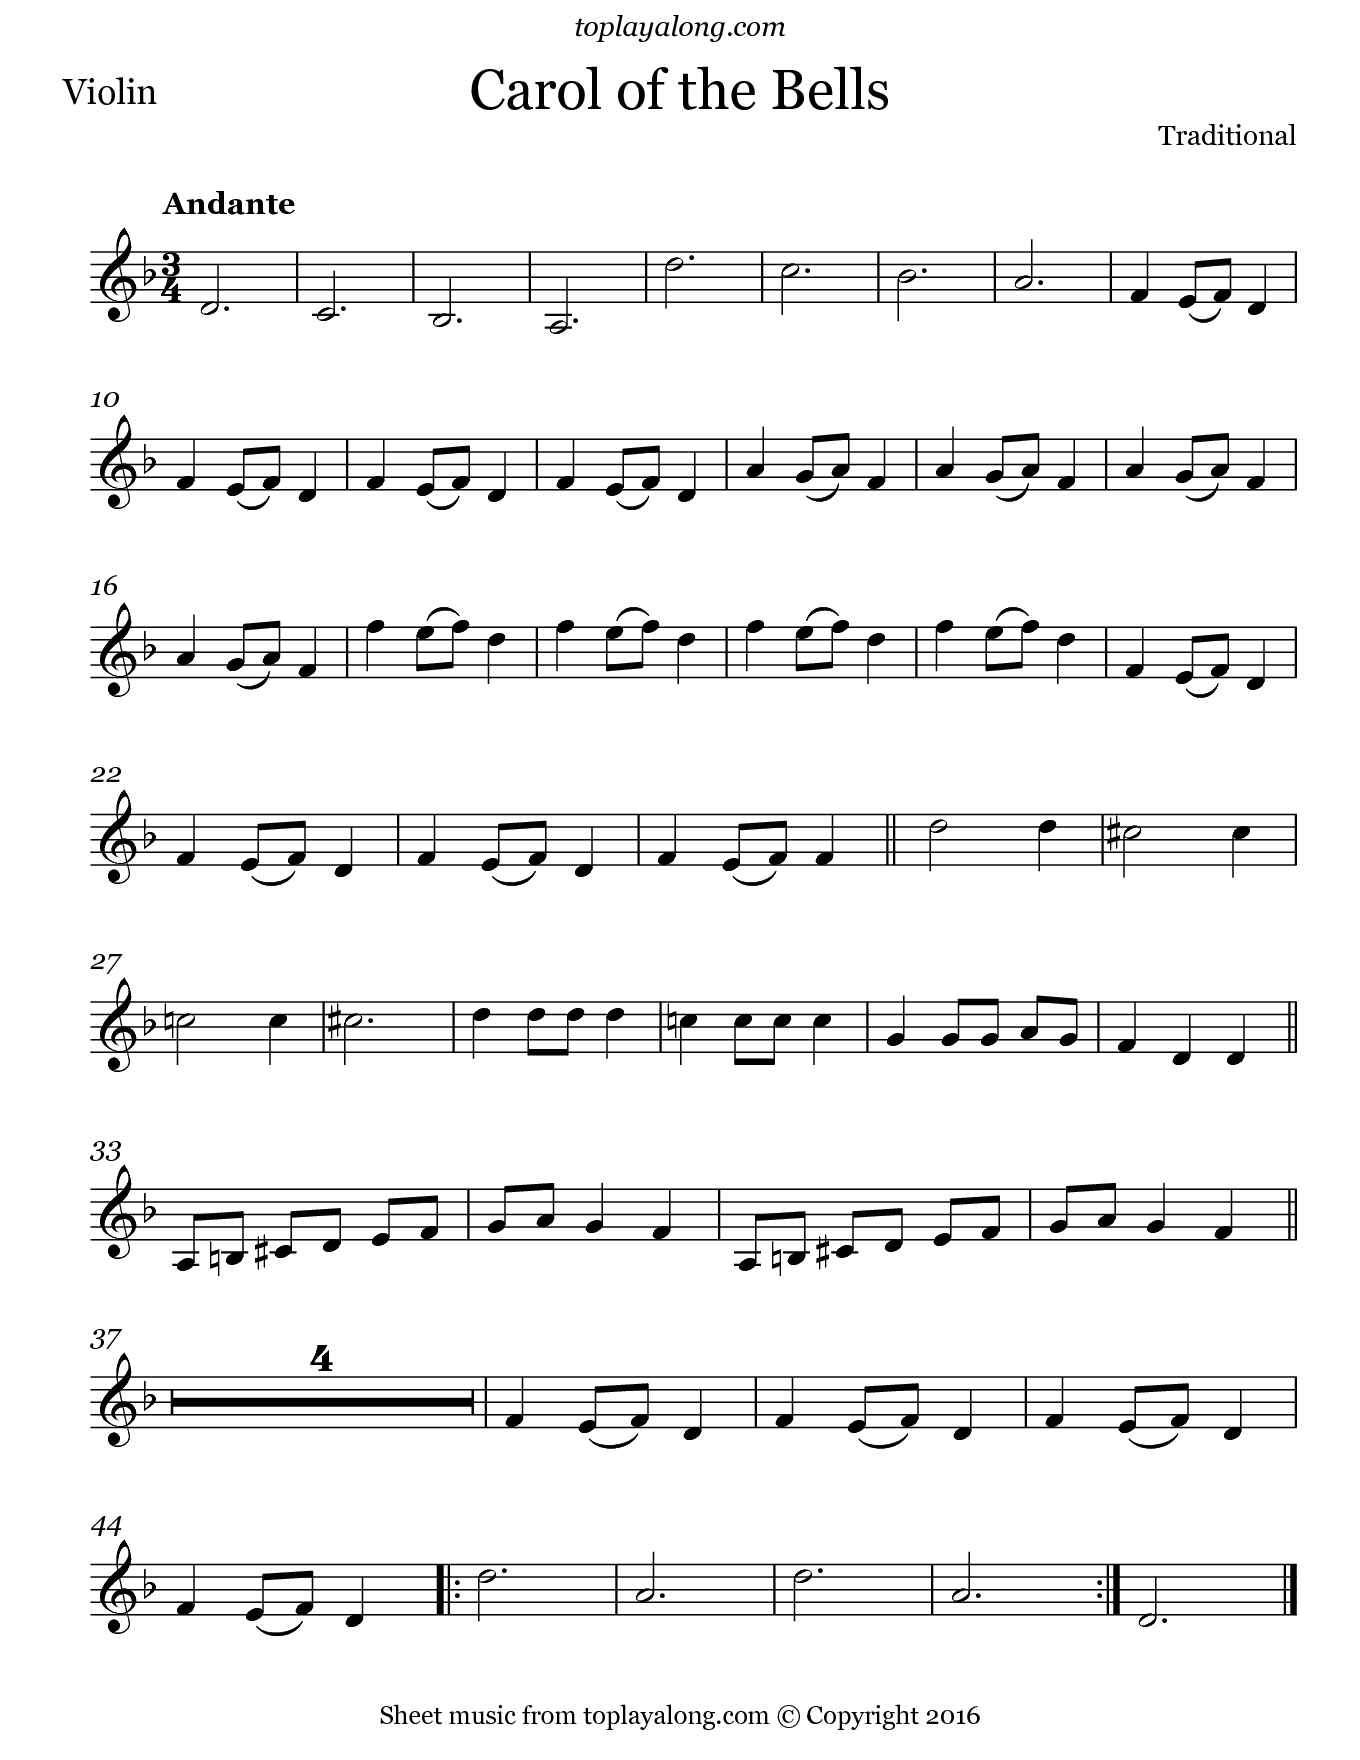 Carol of the Bells. Sheet music for Violin, page 1.